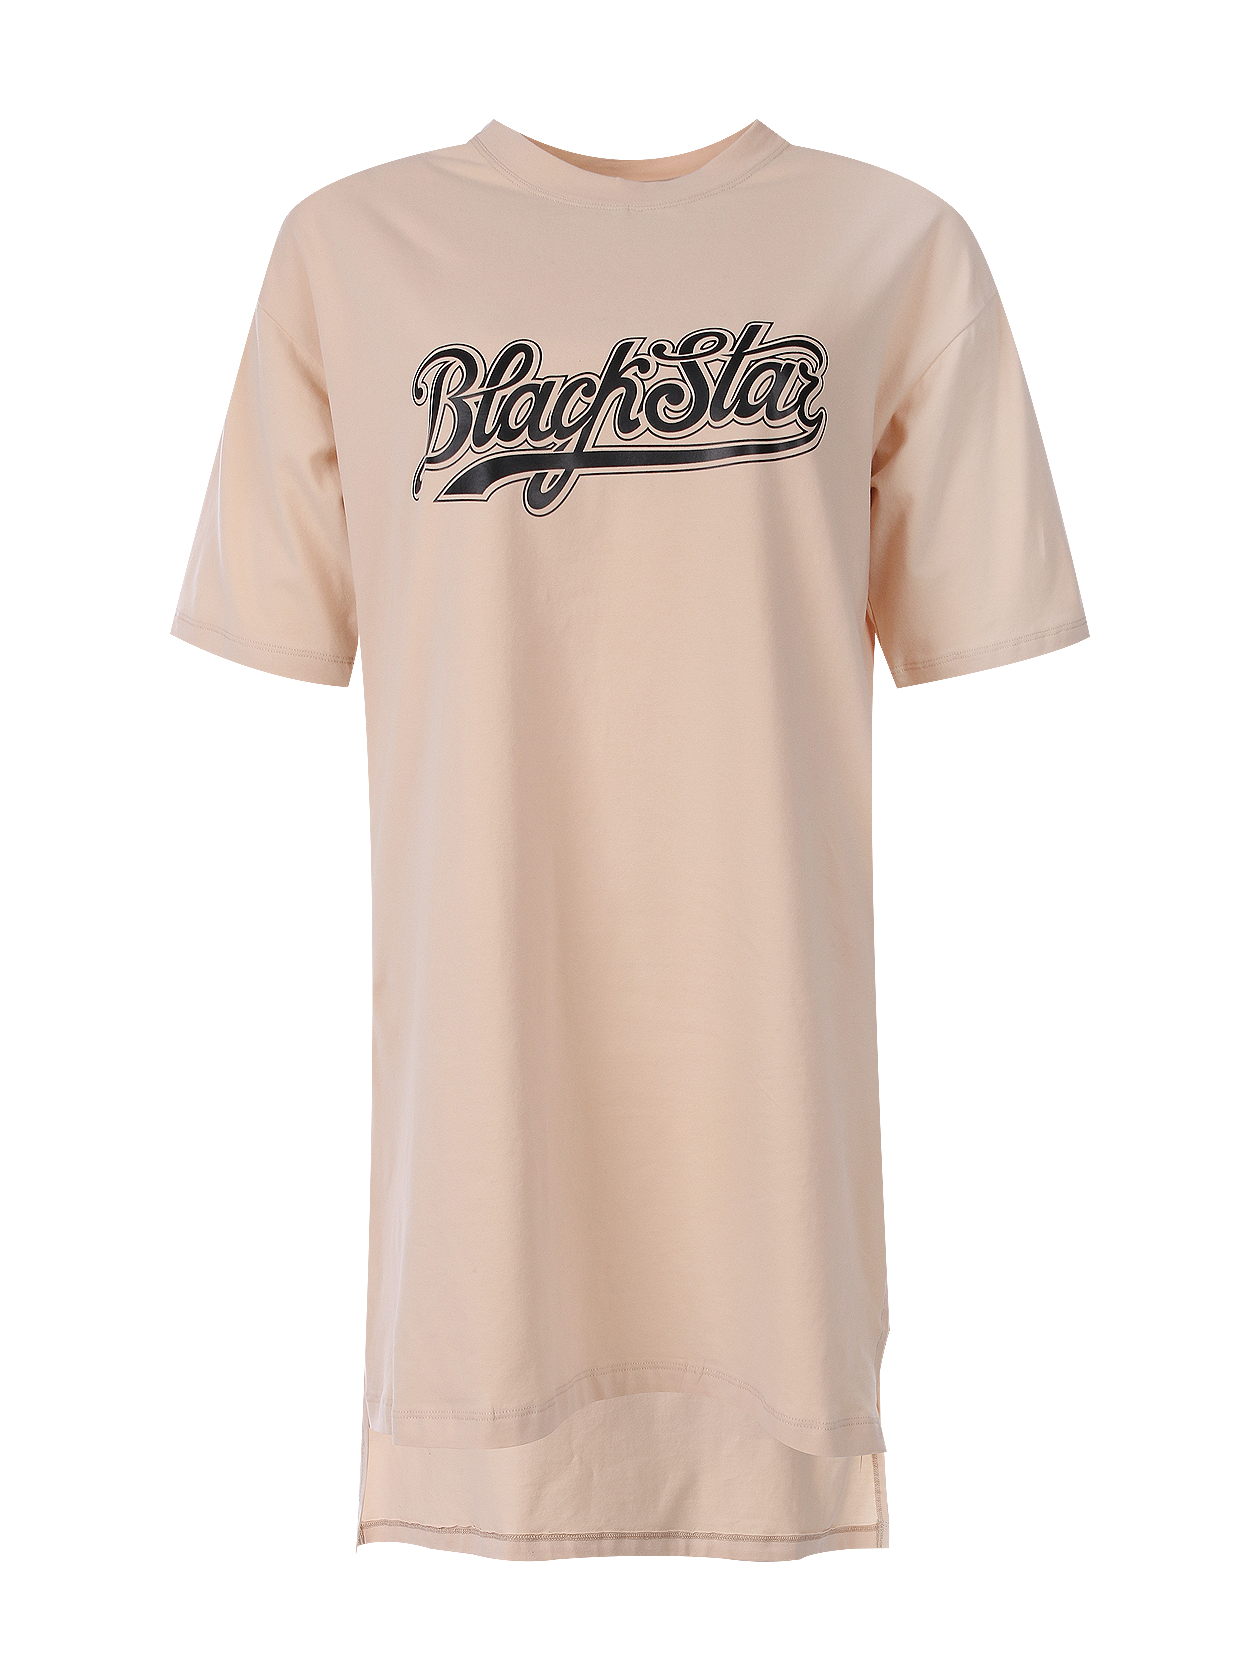 Womens t-shirt ClassicWomens oversize t-shirt with Black Star print on the chest. You can wear it with shorts, leggings, jeans or by itself. O-neck, cuts on sides, long back. Avaliable in white and beige.<br><br>size: S<br>color: Beige<br>gender: female